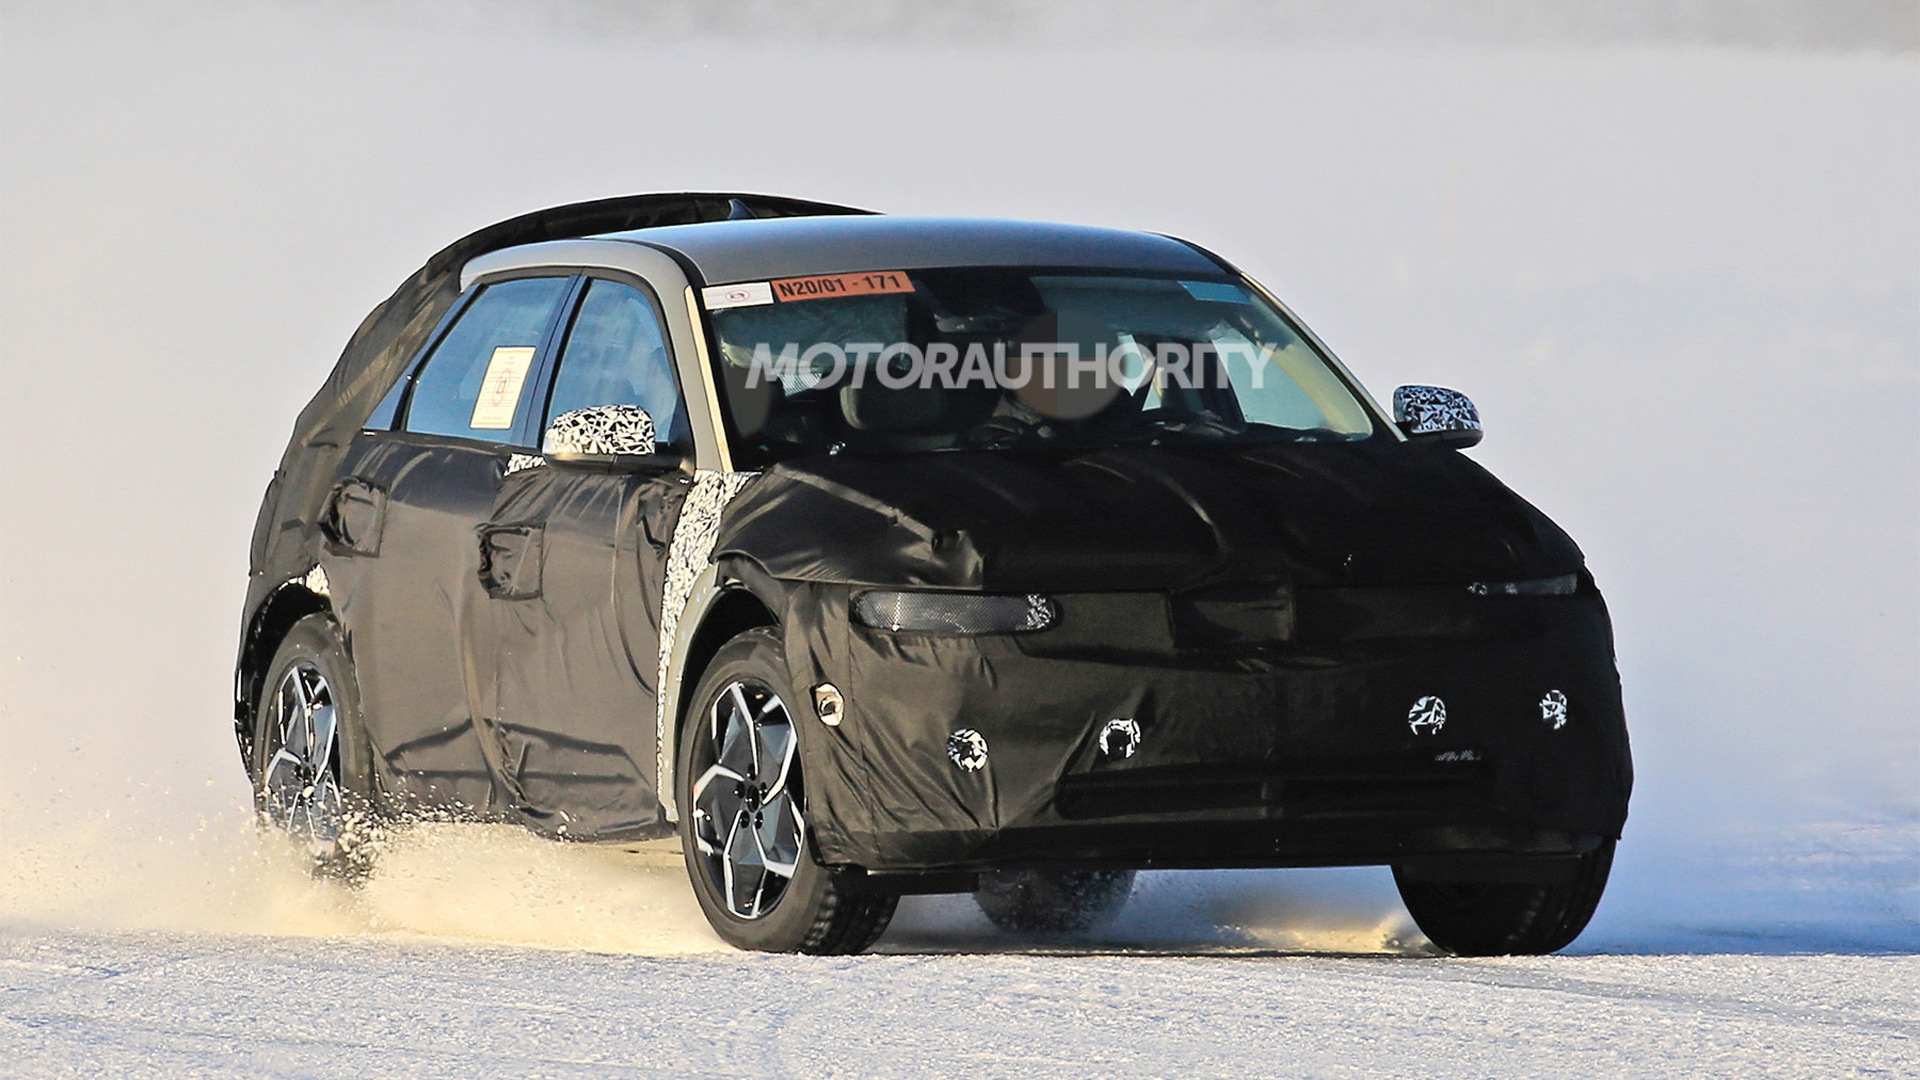 2021 Hyundai 45 EV spy shots - Photo credit: S. Baldauf/SB-Medien